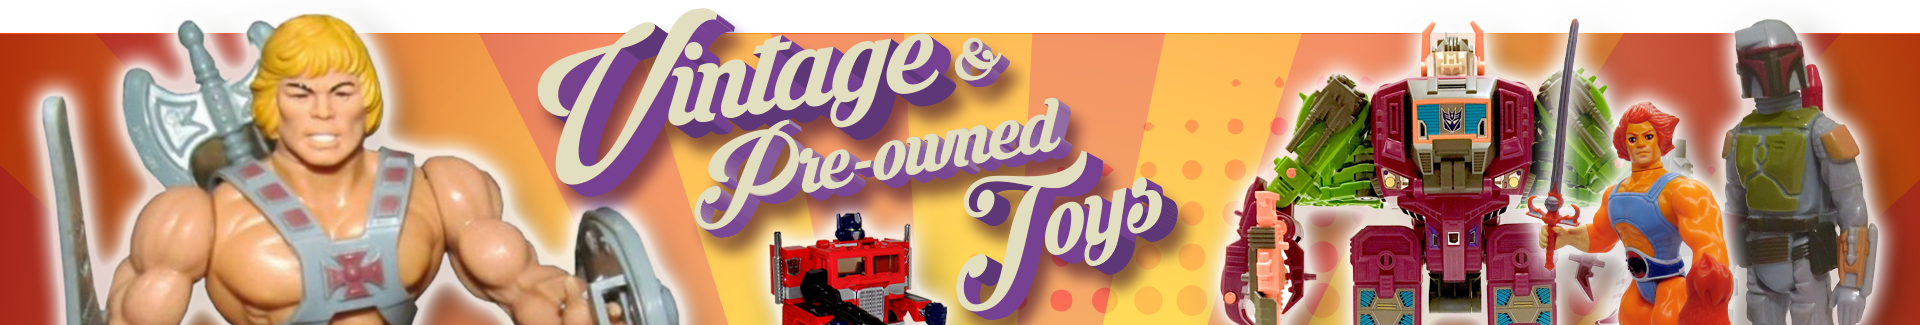 Vintage and pre-own toys